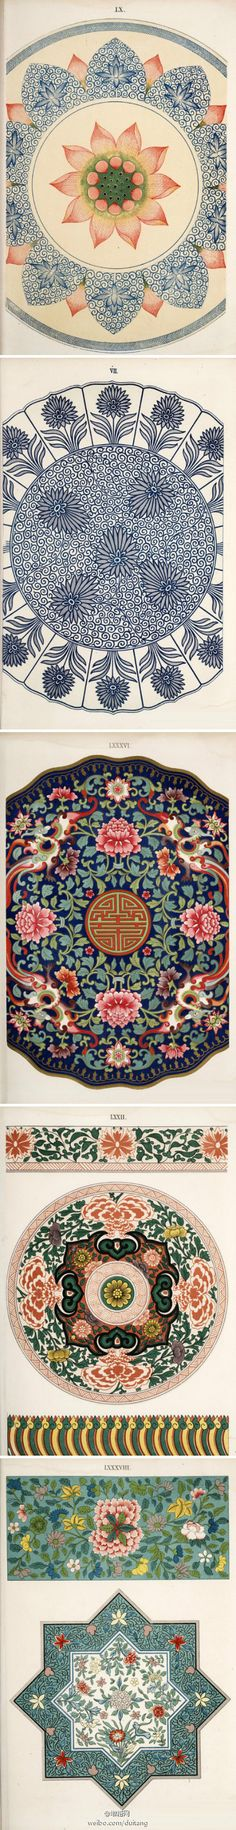 chinese traditional pattern design // Patterns, Fabrics, Prints & Dessins